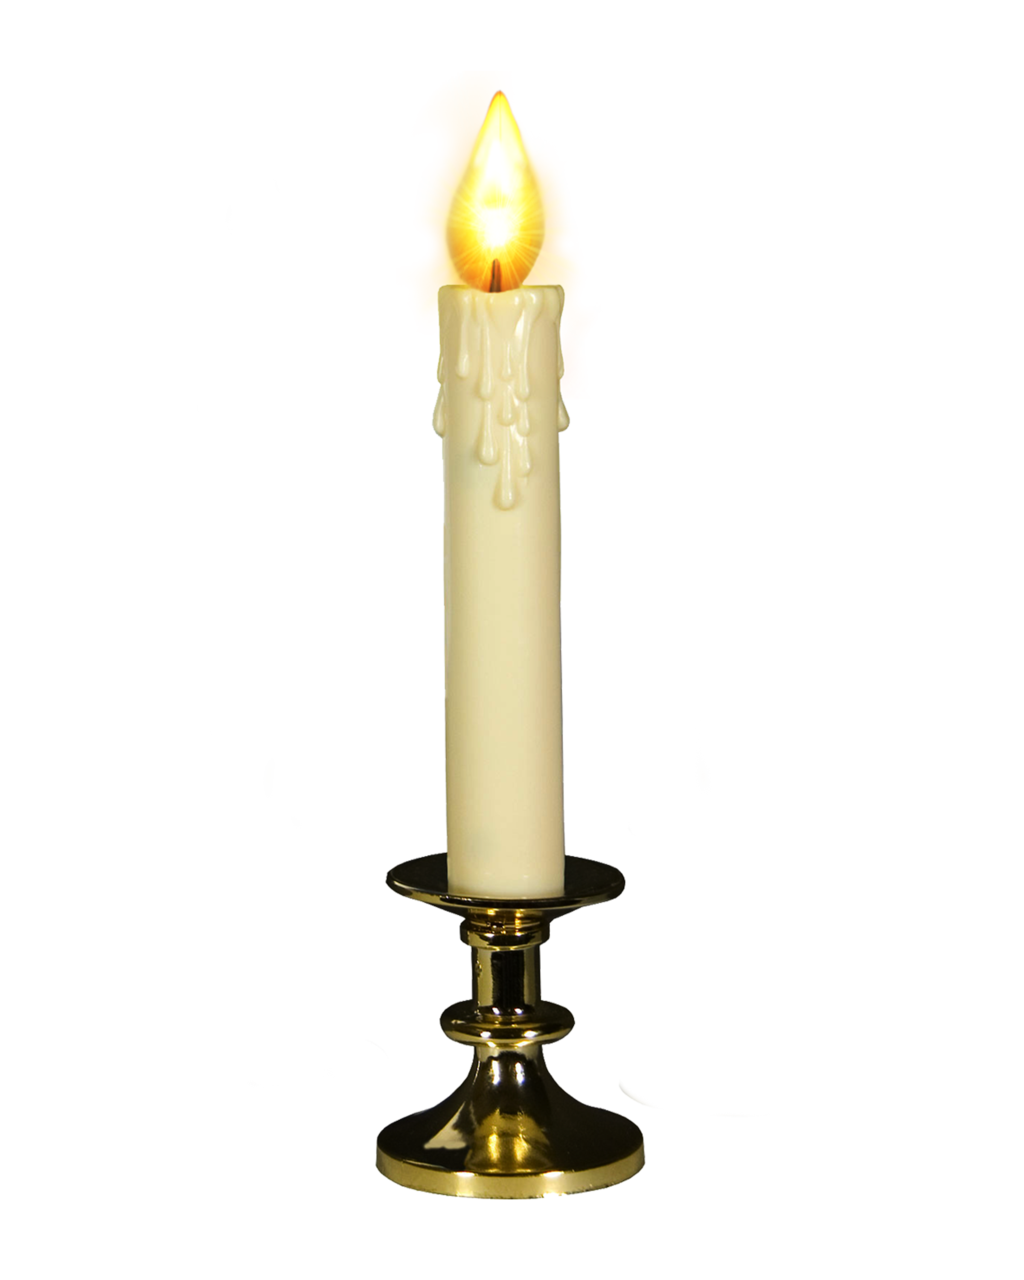 jpg free stock Transparent candle background. White s png image